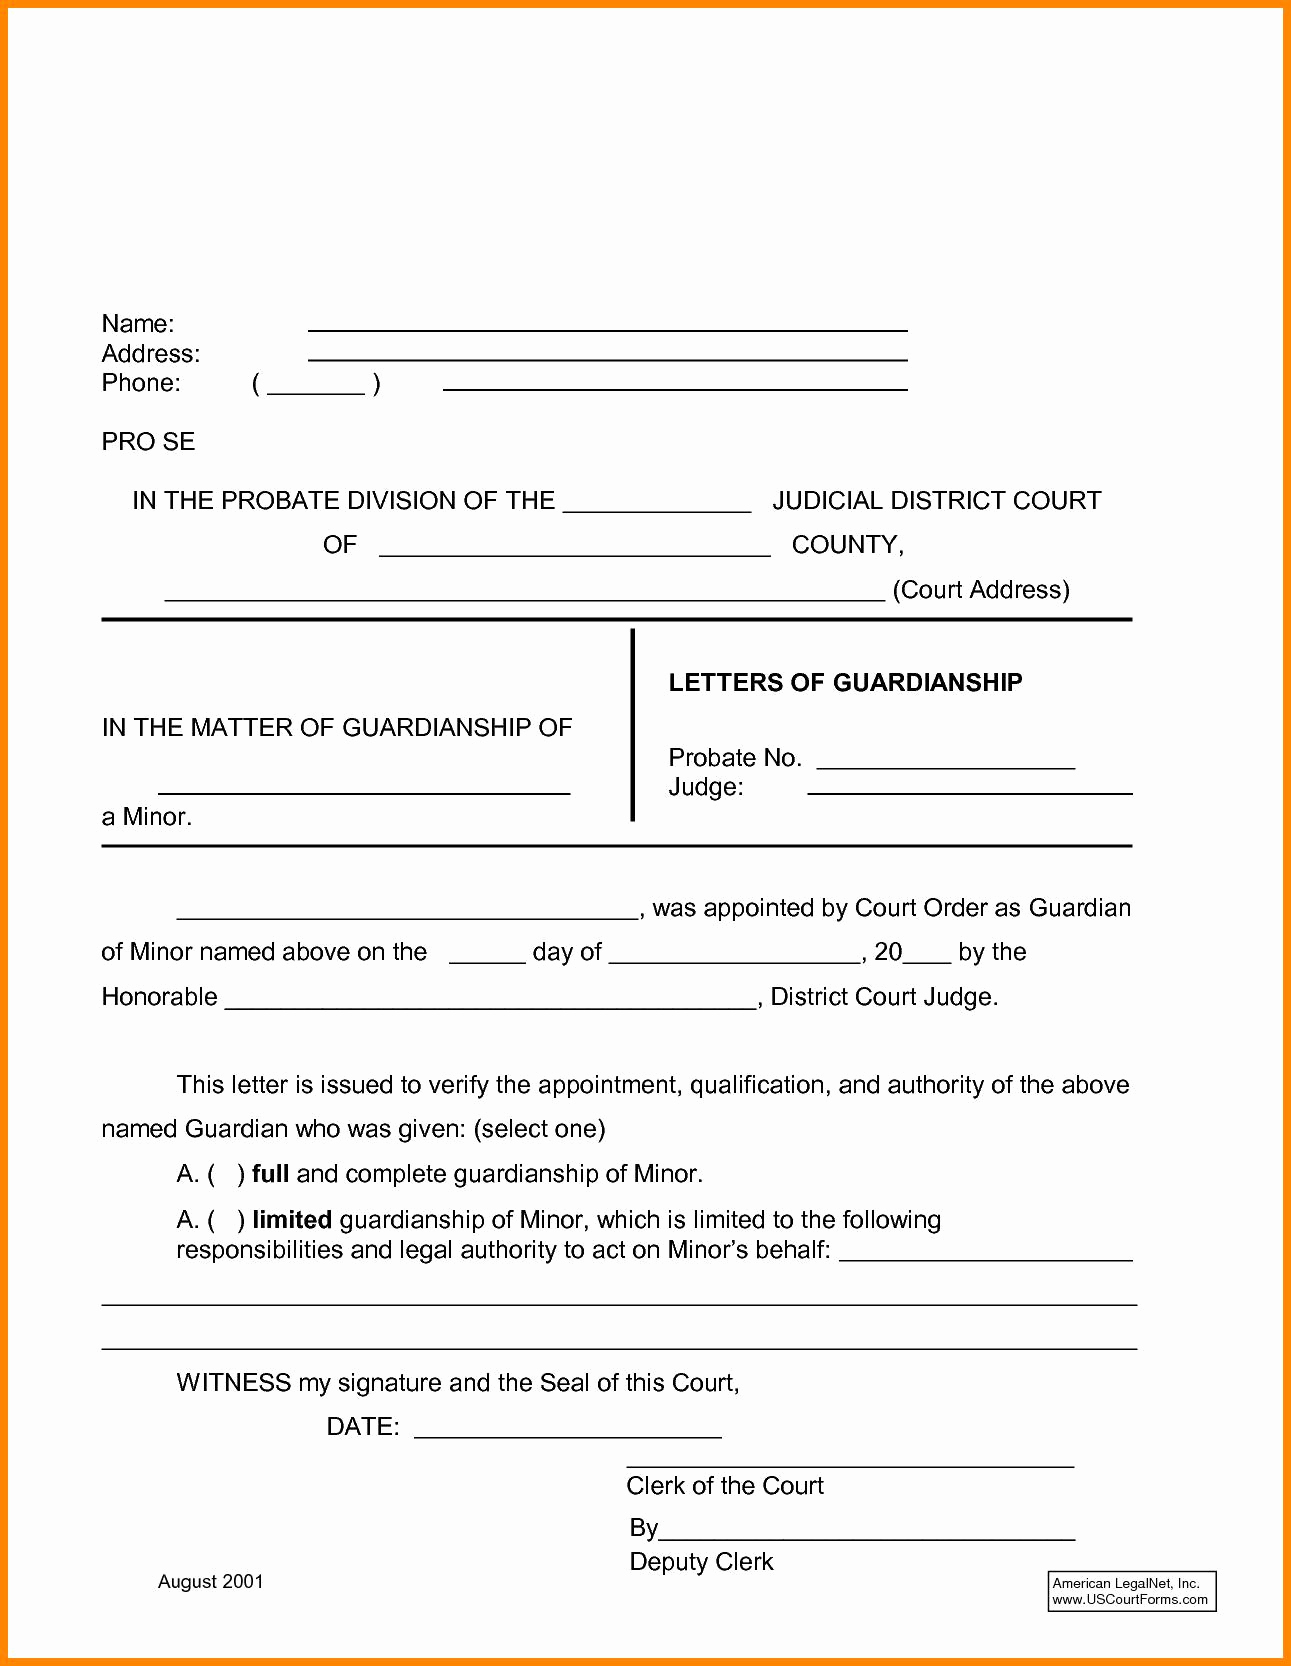 temporary guardianship letter template example-Temporary Guardianship Agreement form Temporary Custody Letter Template Elegant Child Custody Agreement 3-j